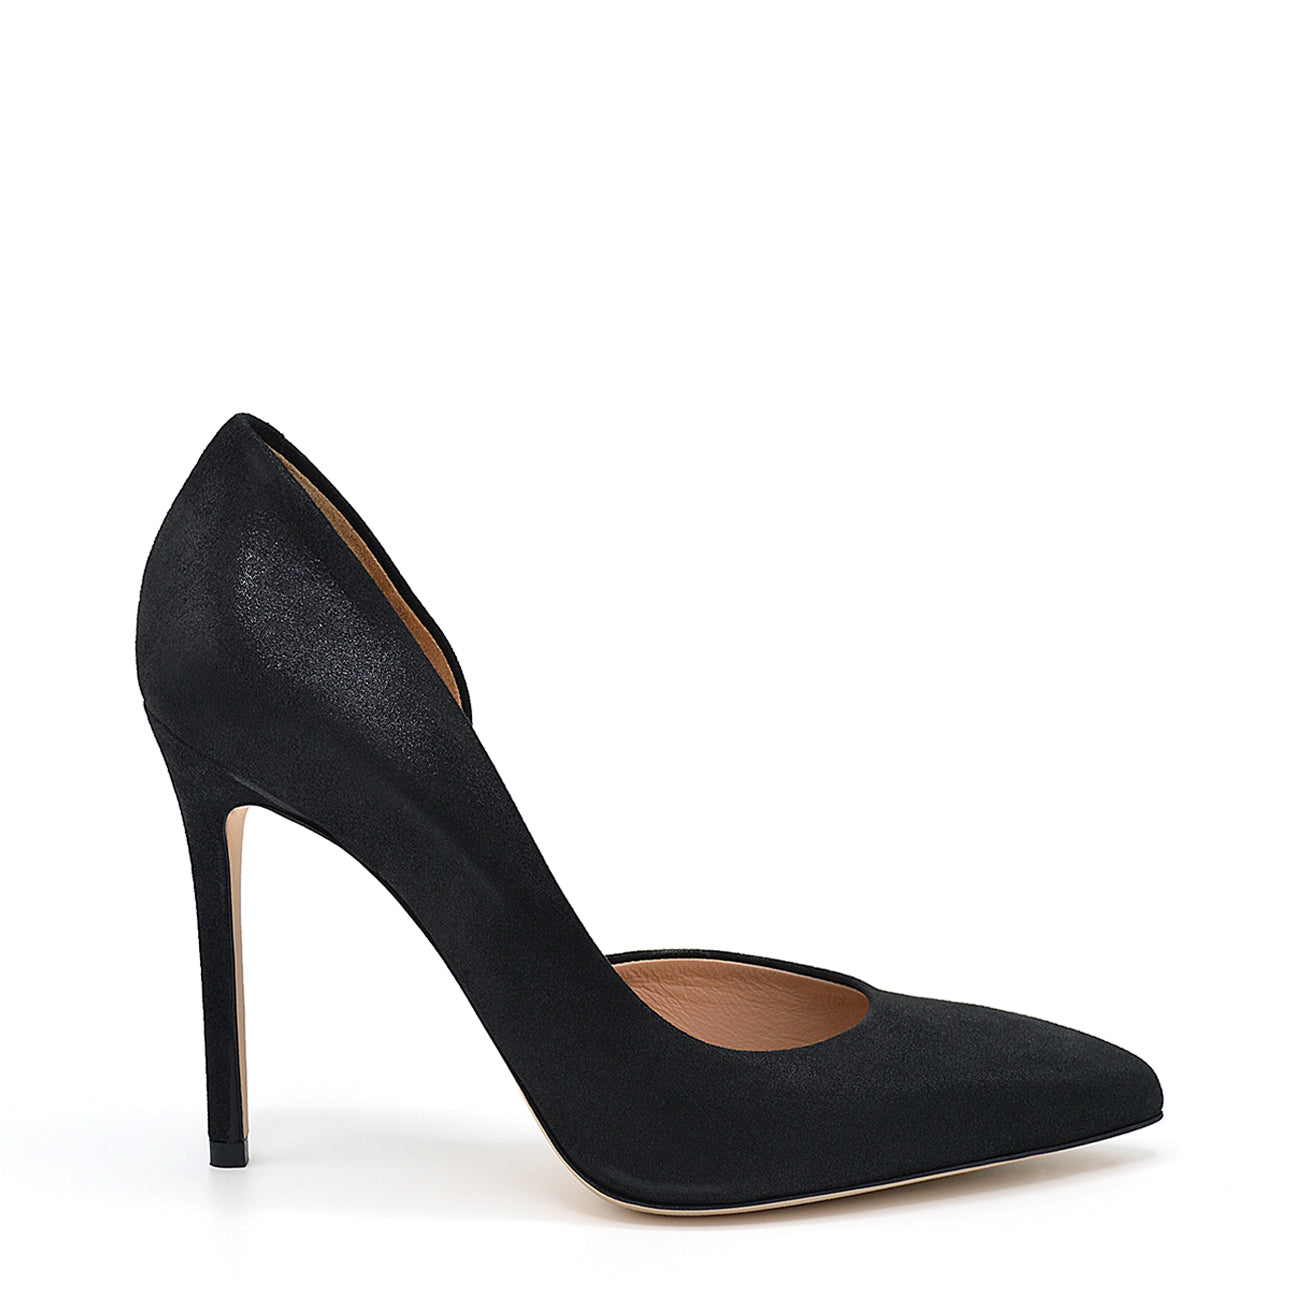 Myla. <br> Black suede pumps